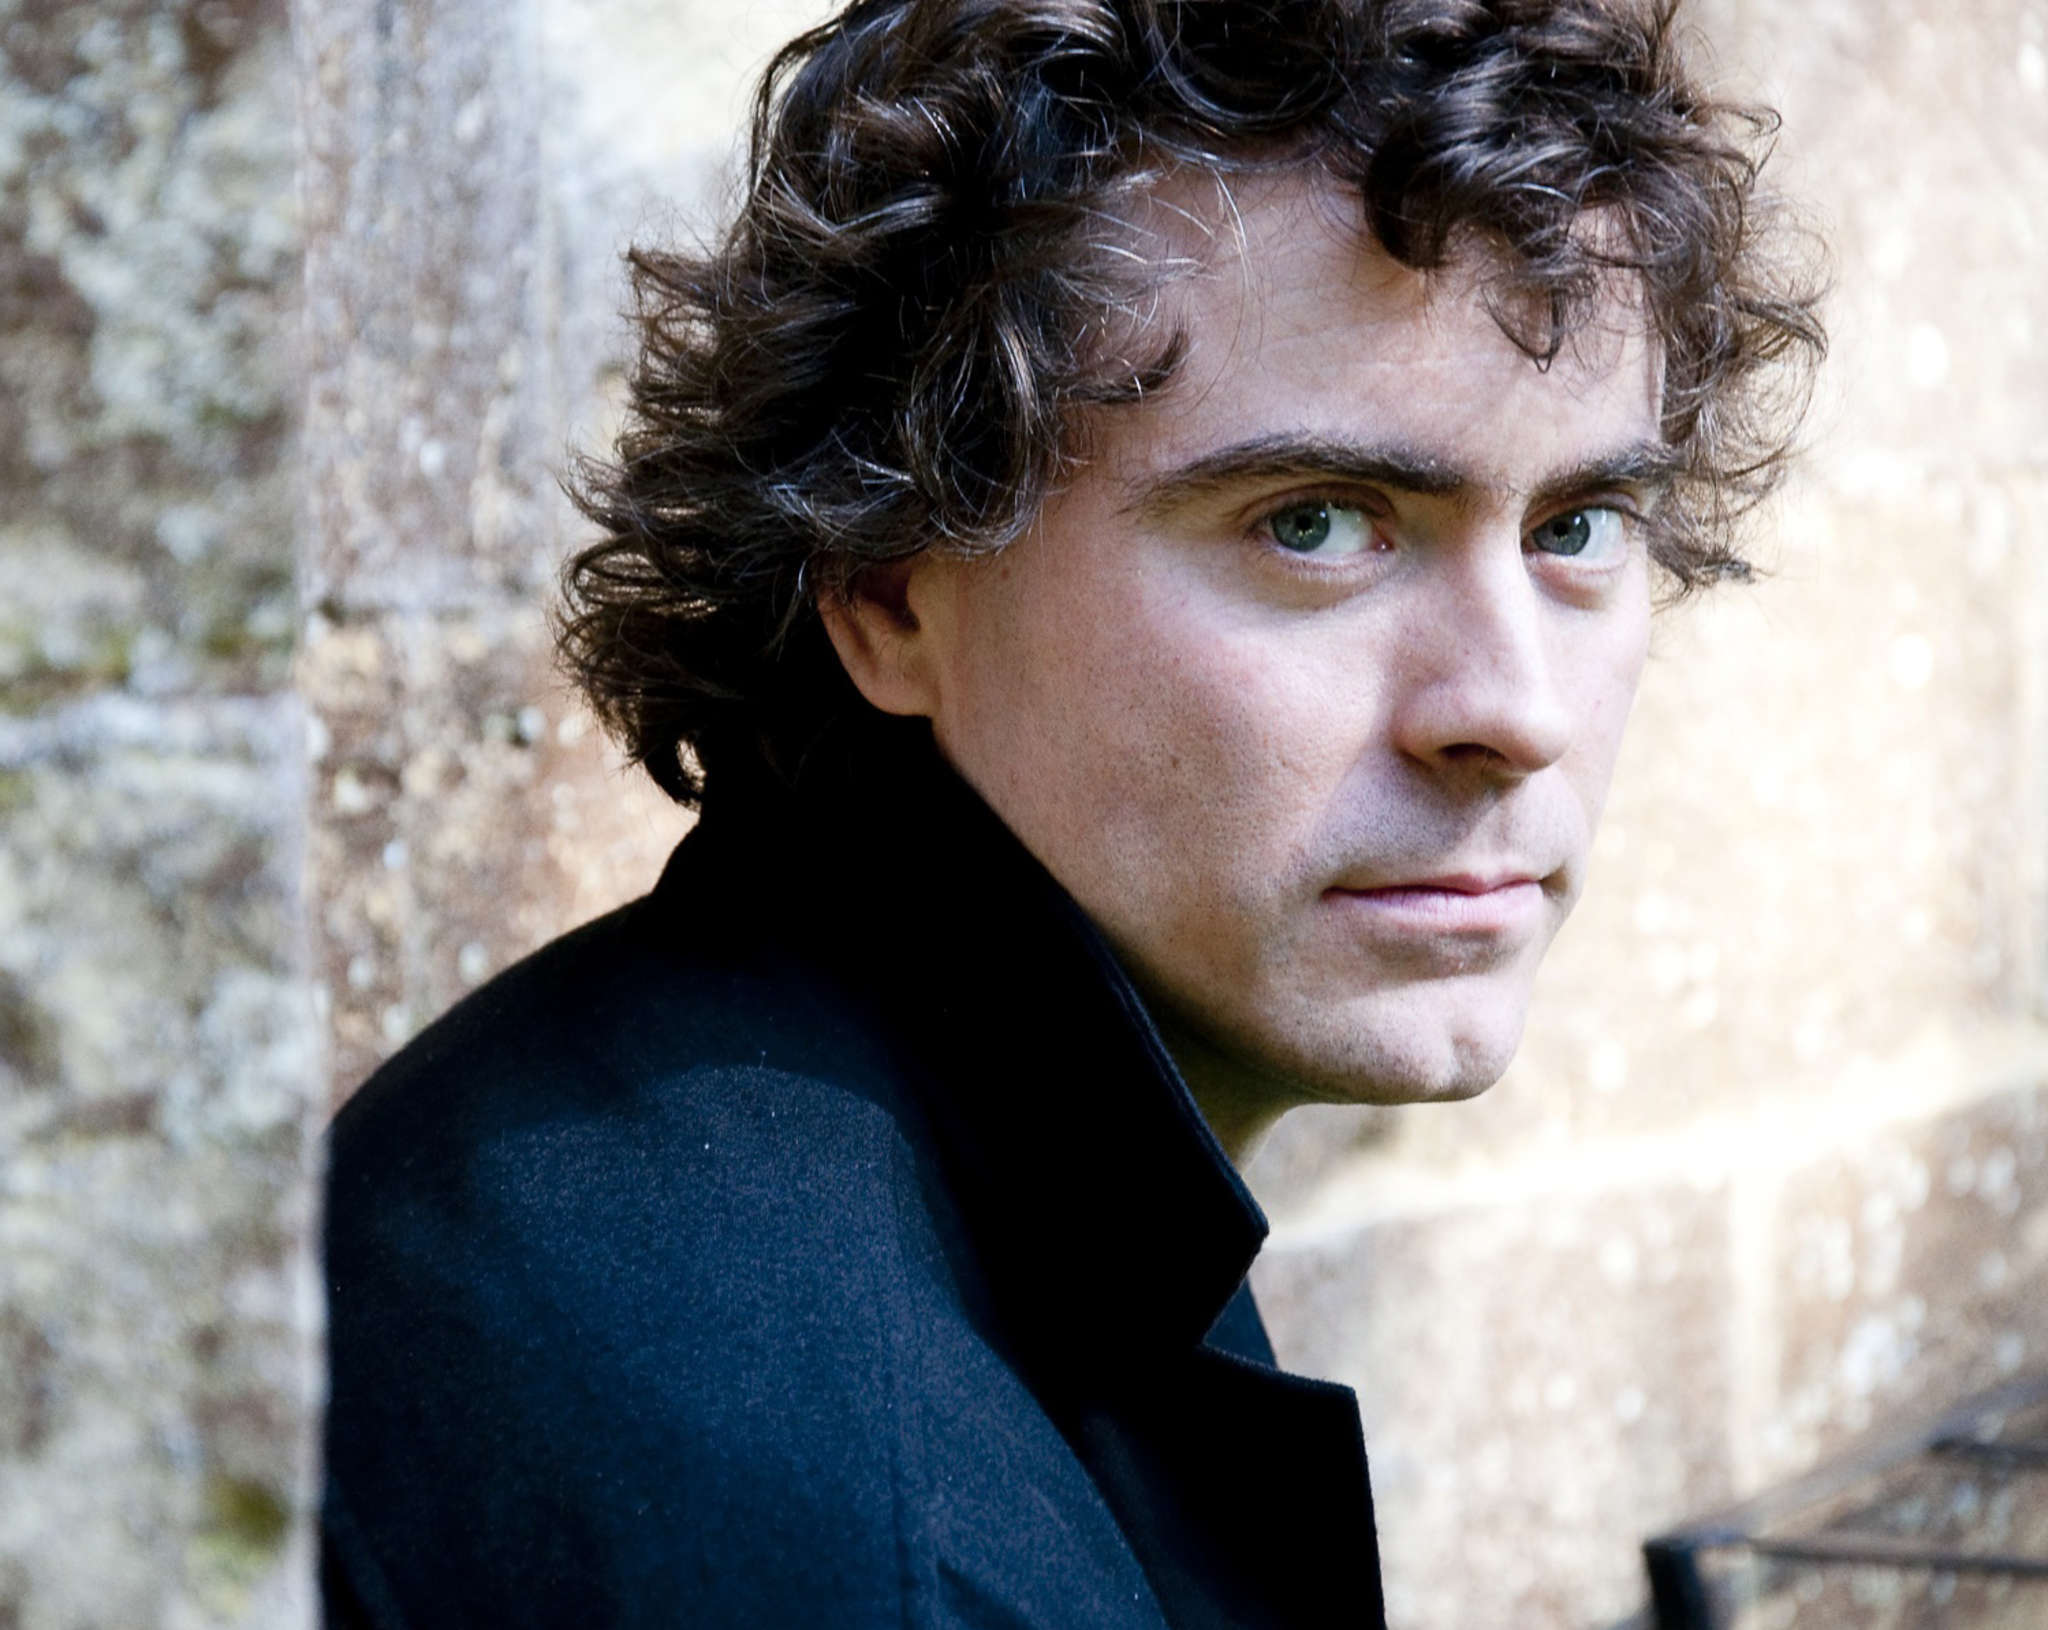 Paul Lewis demonstrated an understanding that tonality is not as secure as it may seem.